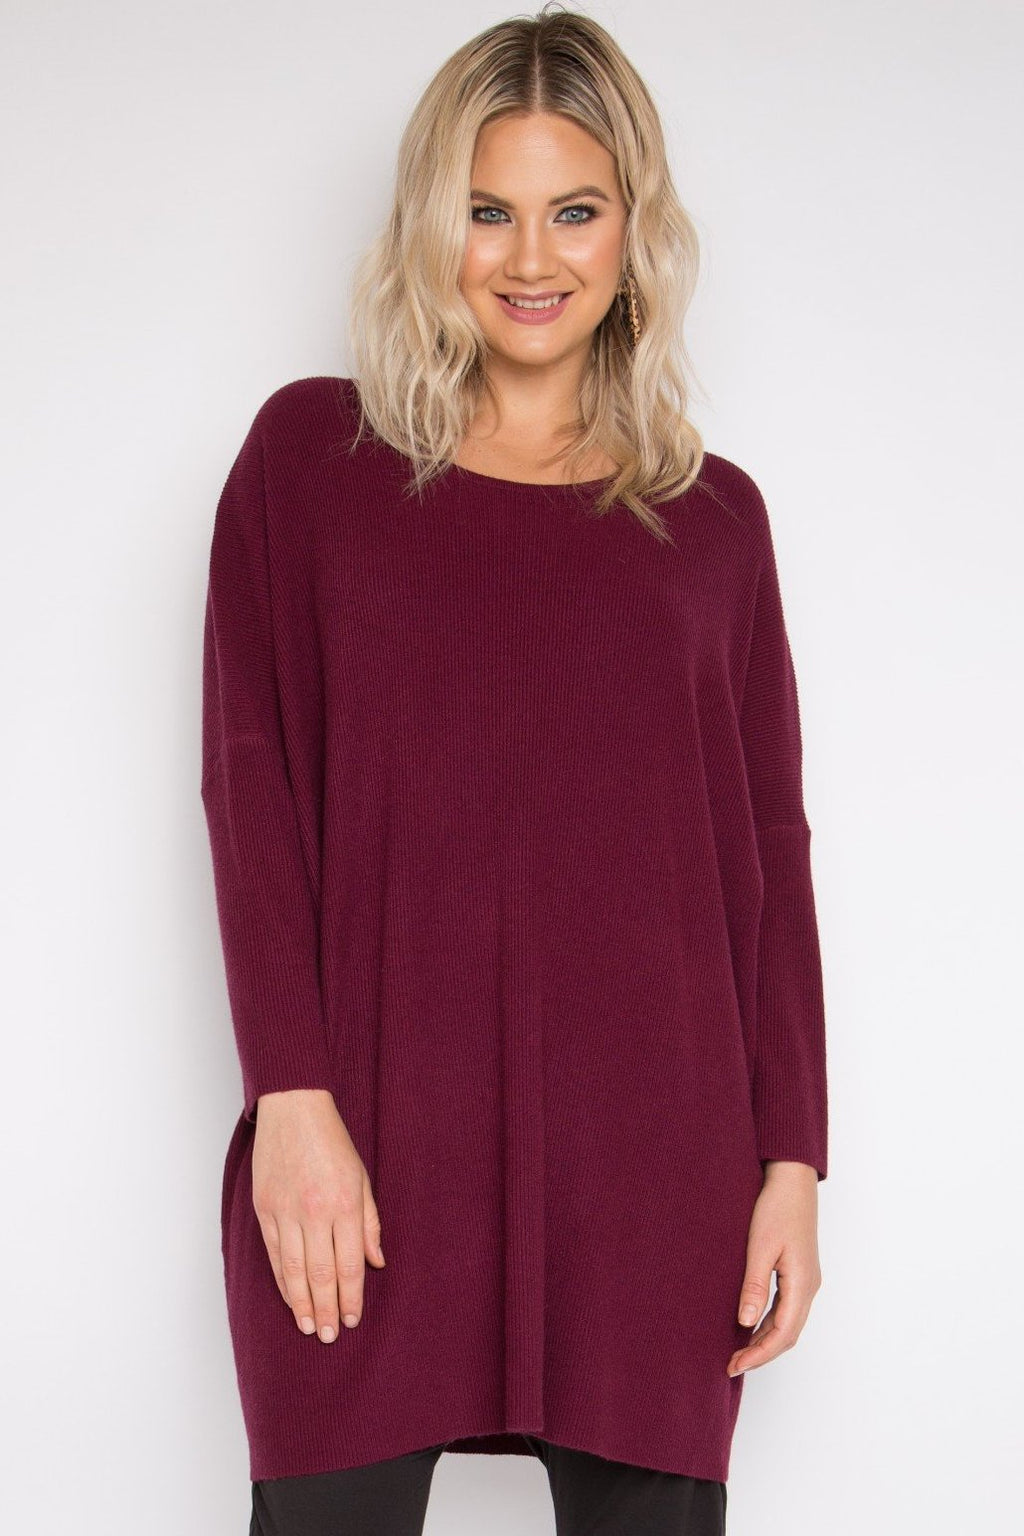 Lounge Tunic Top in Black Cherry